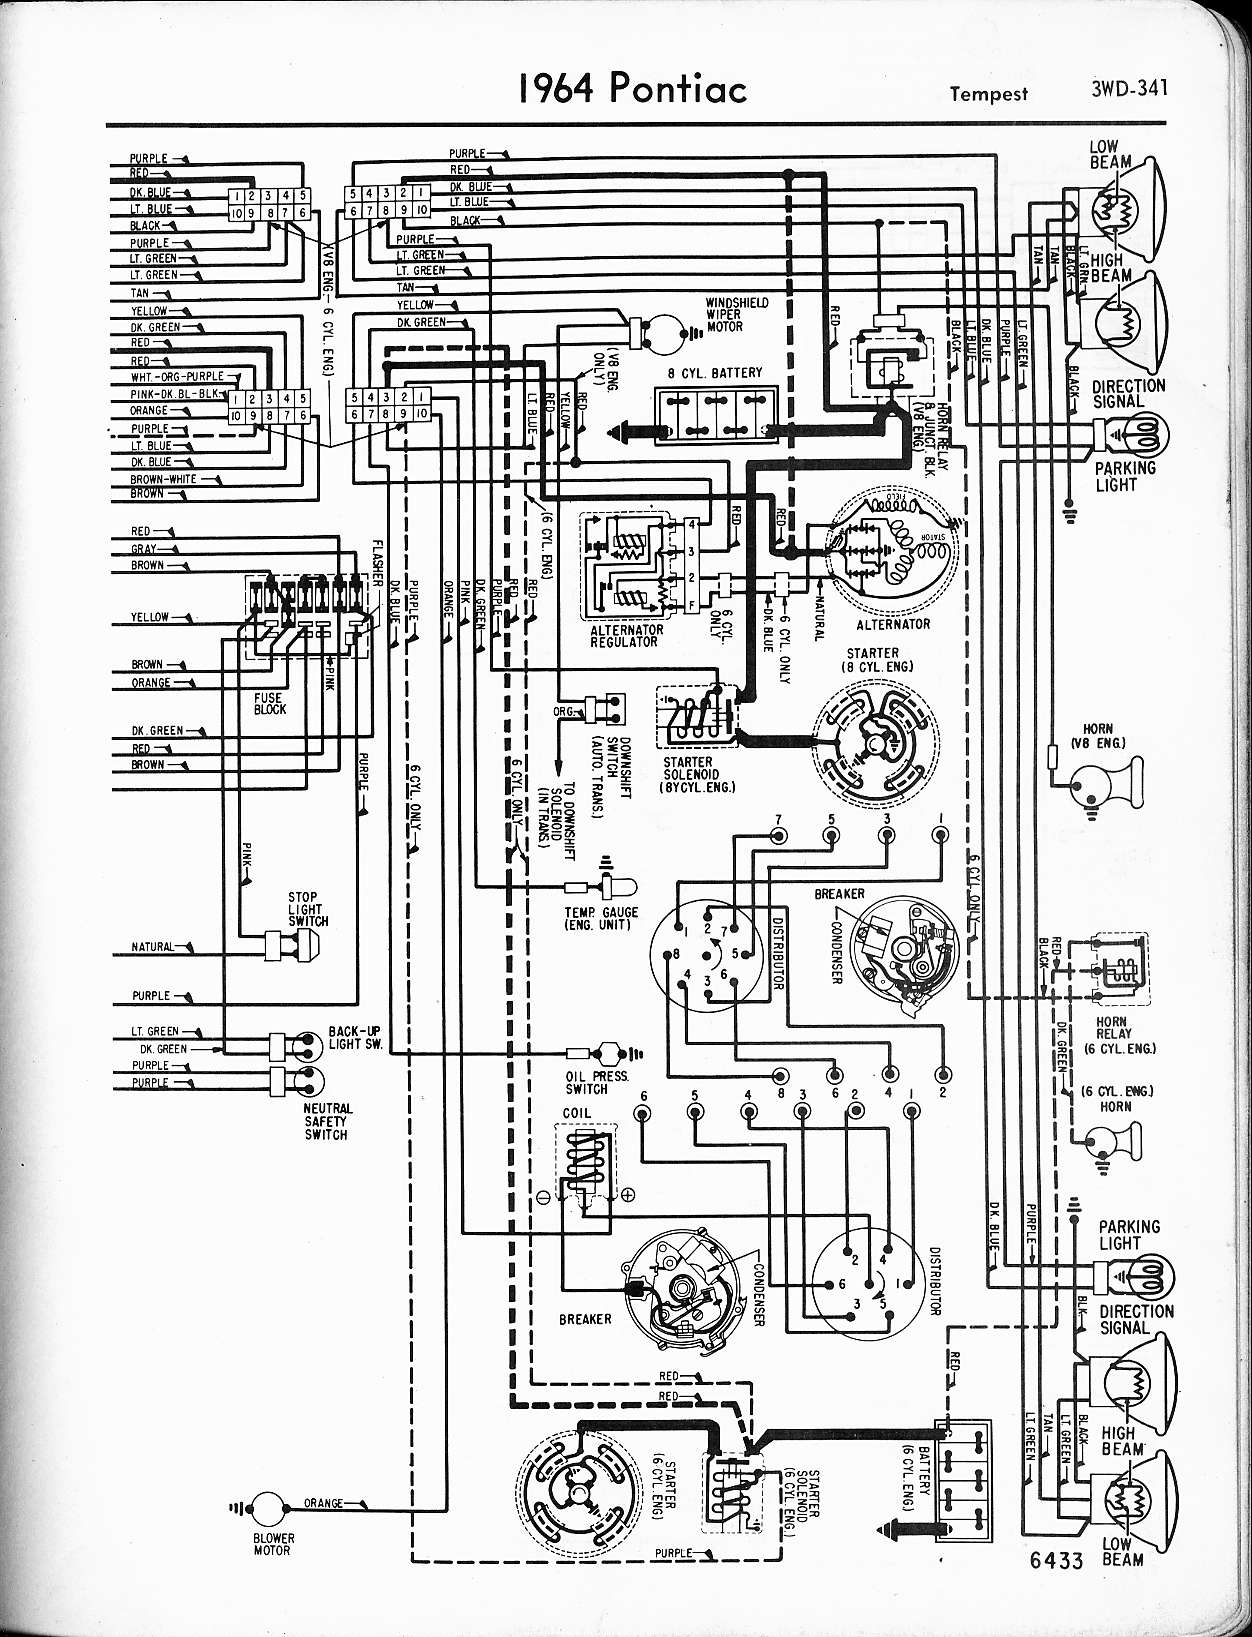 Pontiac catalina wiring diagrams ford galaxie